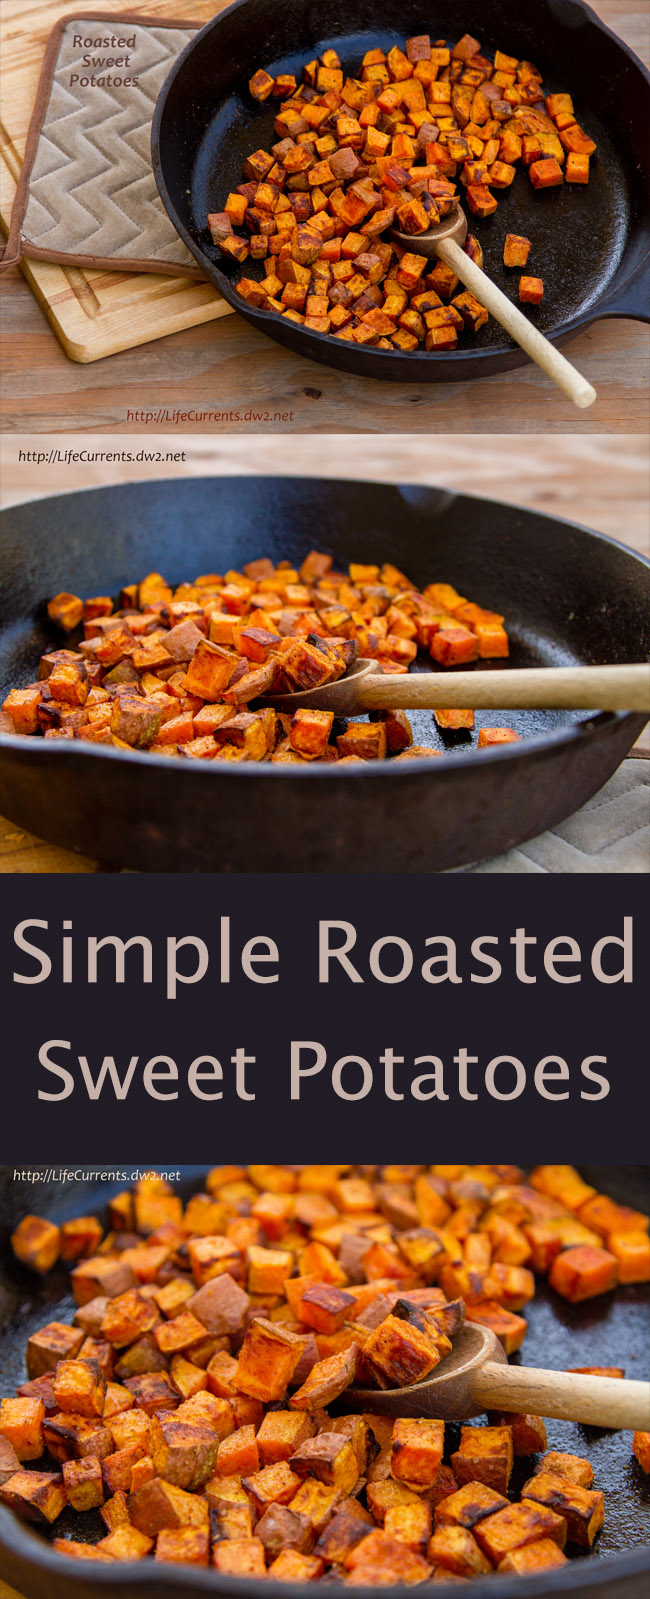 Roasted Sweet Potatoes are a perfect side dish - I find that roasting gives greater flavor and complexity to the food. The caramelization just brings out the toasty nuttiness and the yumminess.